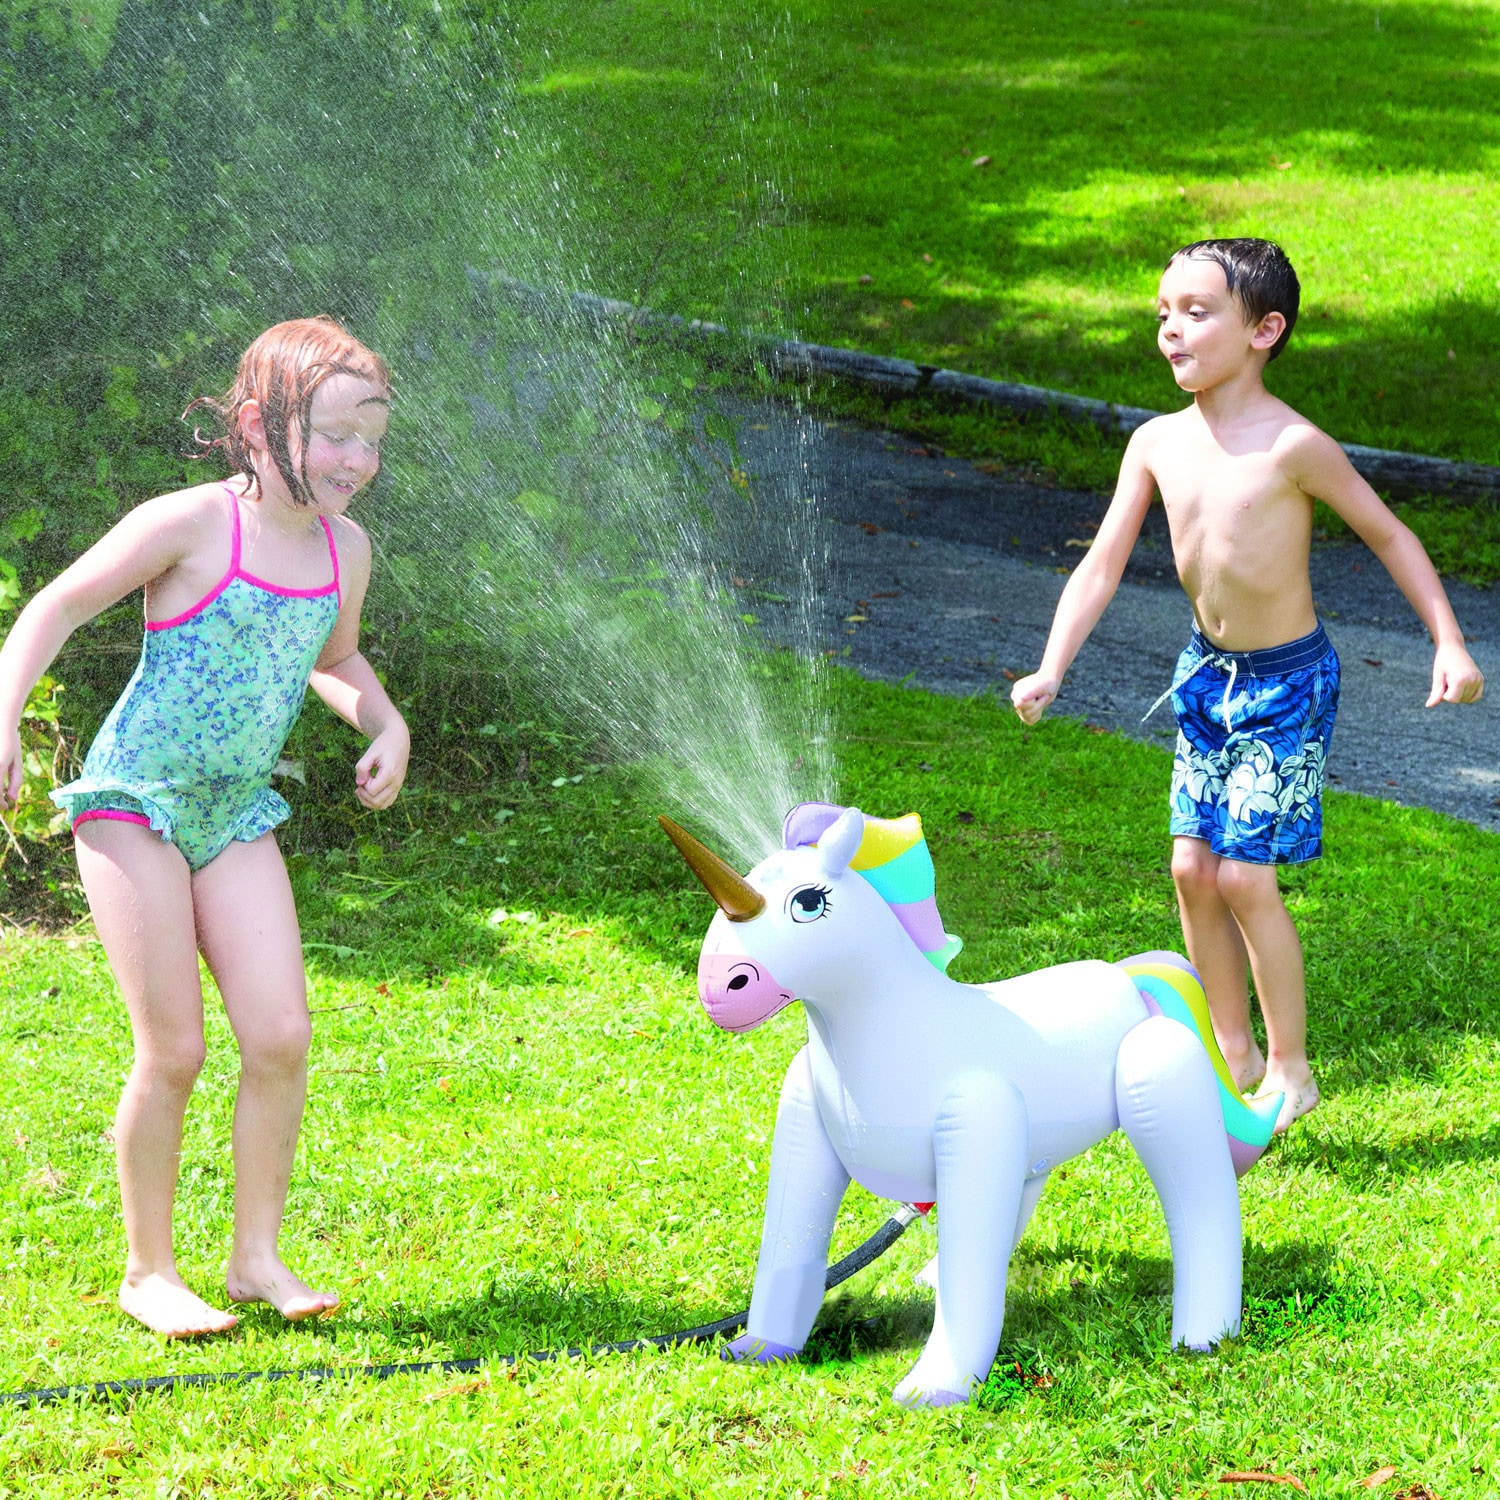 thumbnail 17 - Etna Inflatable Water Sprinklers -Unicorn, Rainbow, Dinosaur Water Toys for Kids